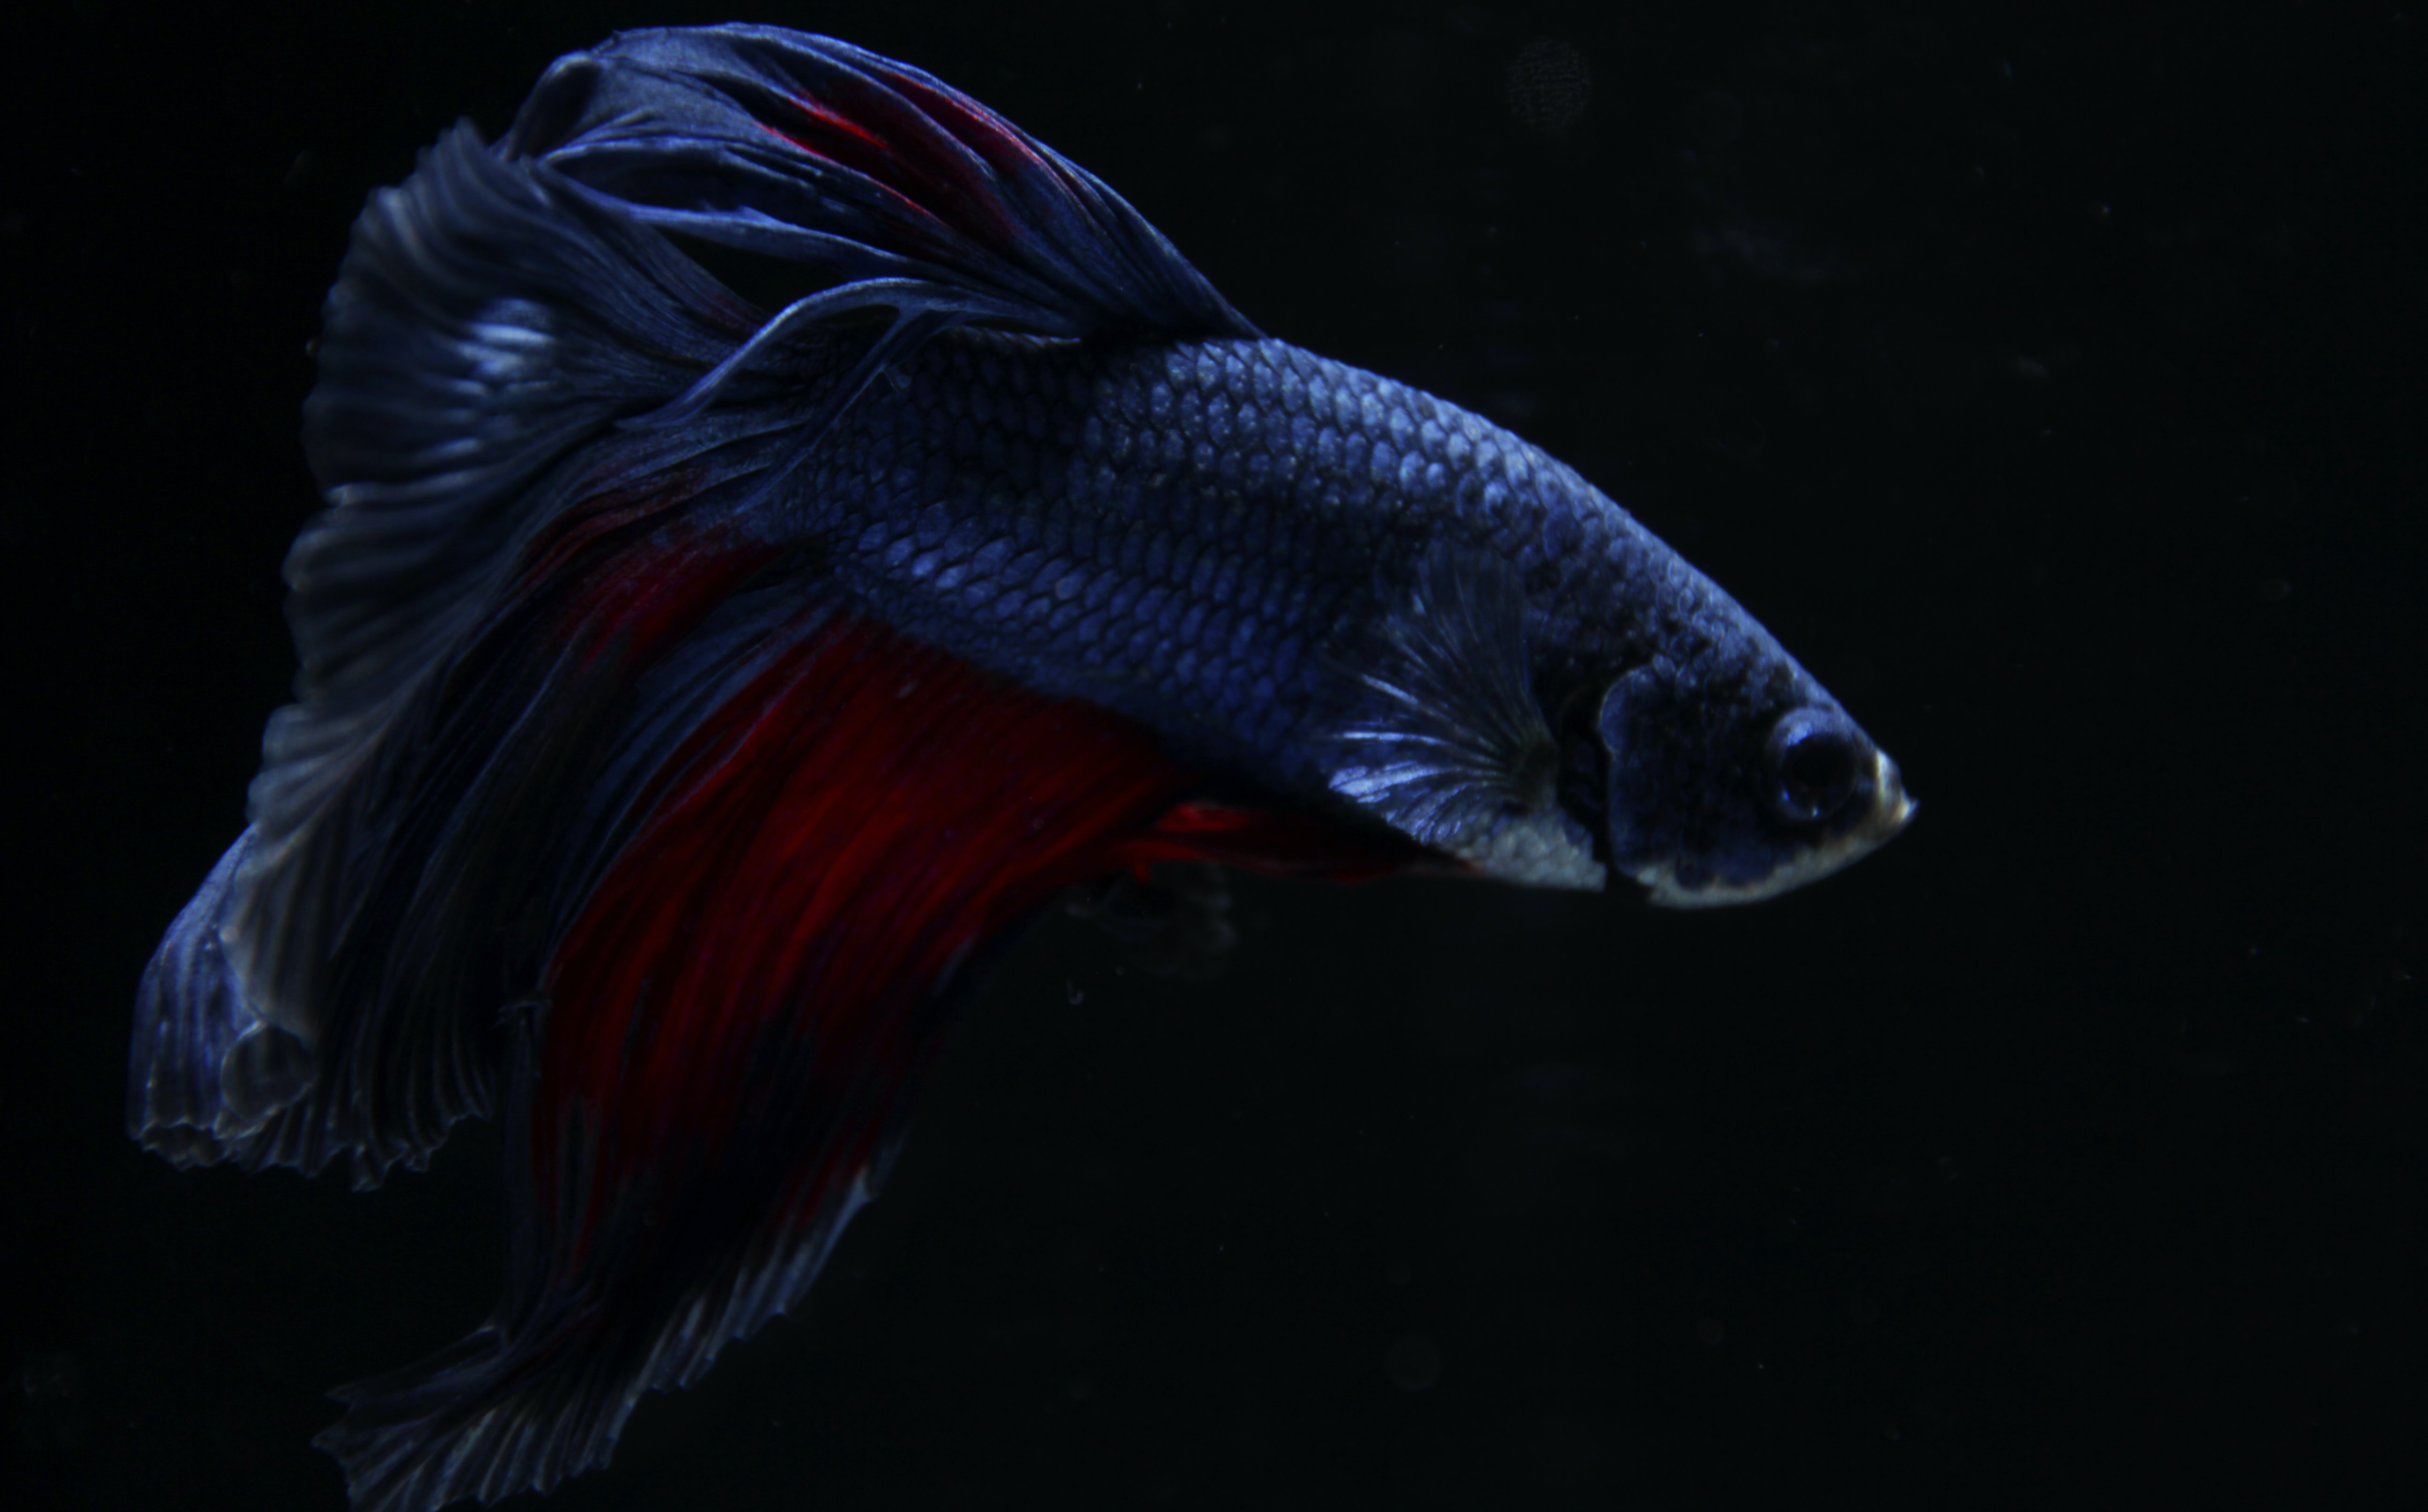 100 betta fish pictures download free images on unsplashblack and red betta fish wallpaper